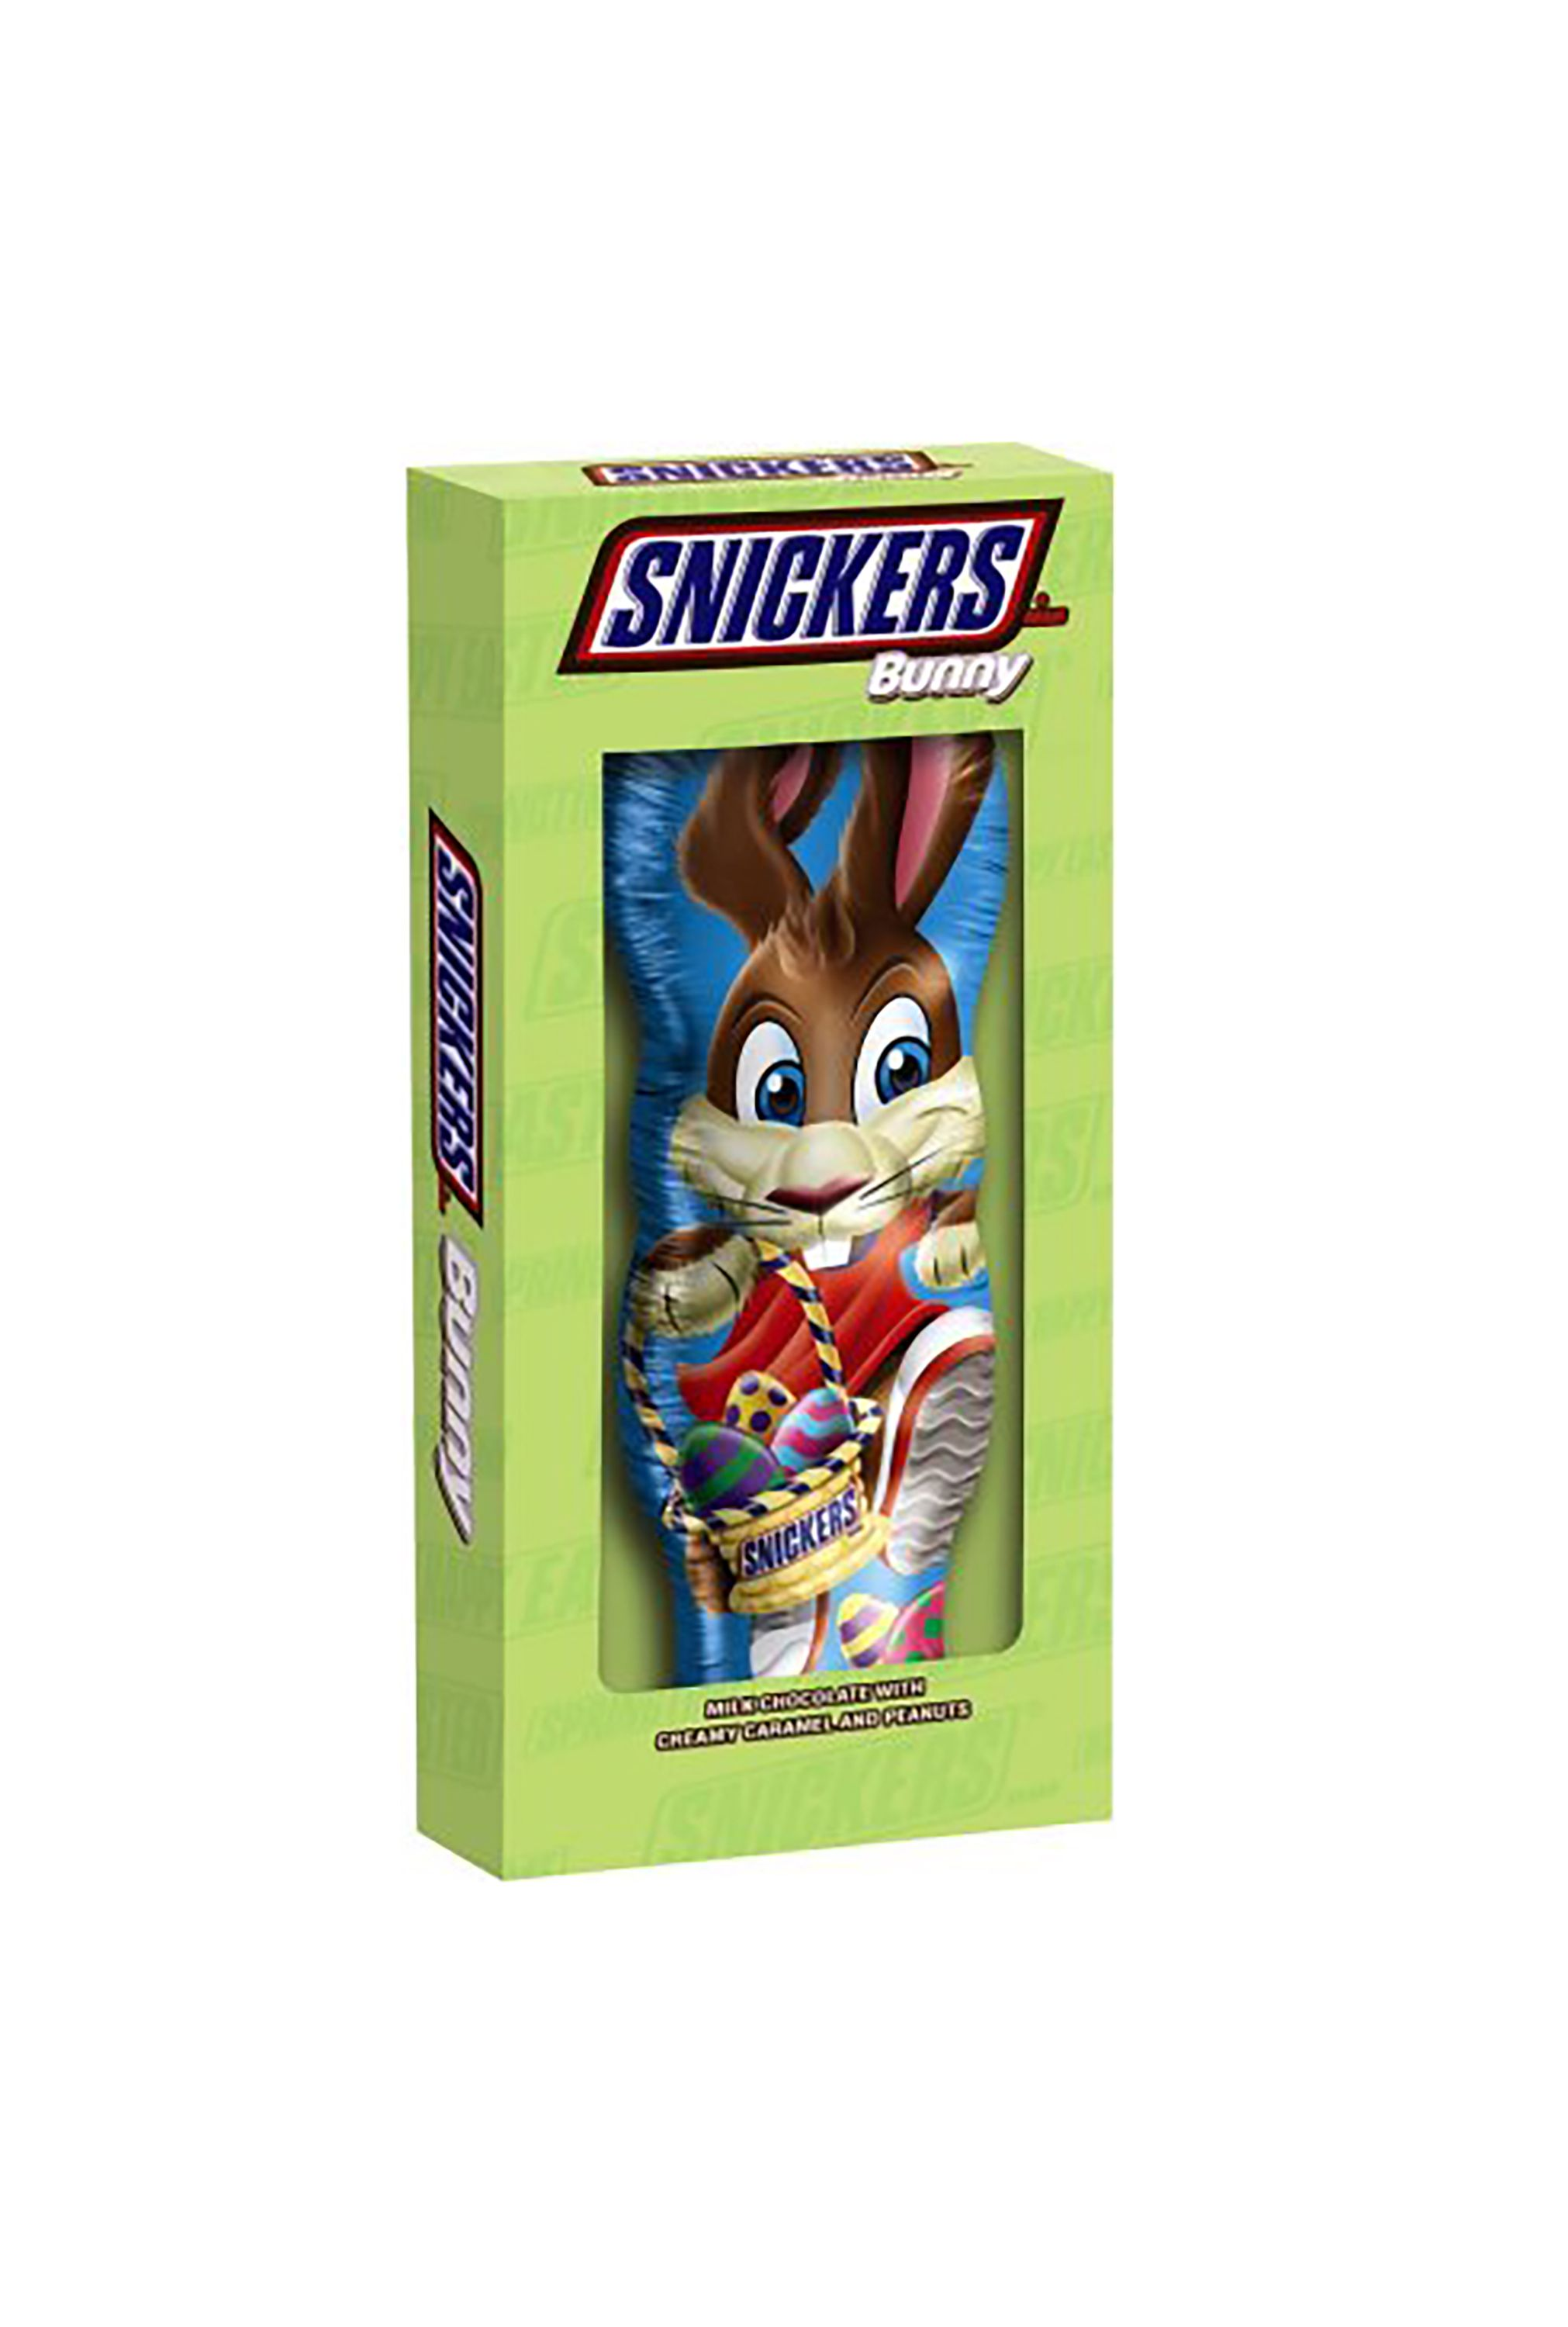 snickers chocolate bunny